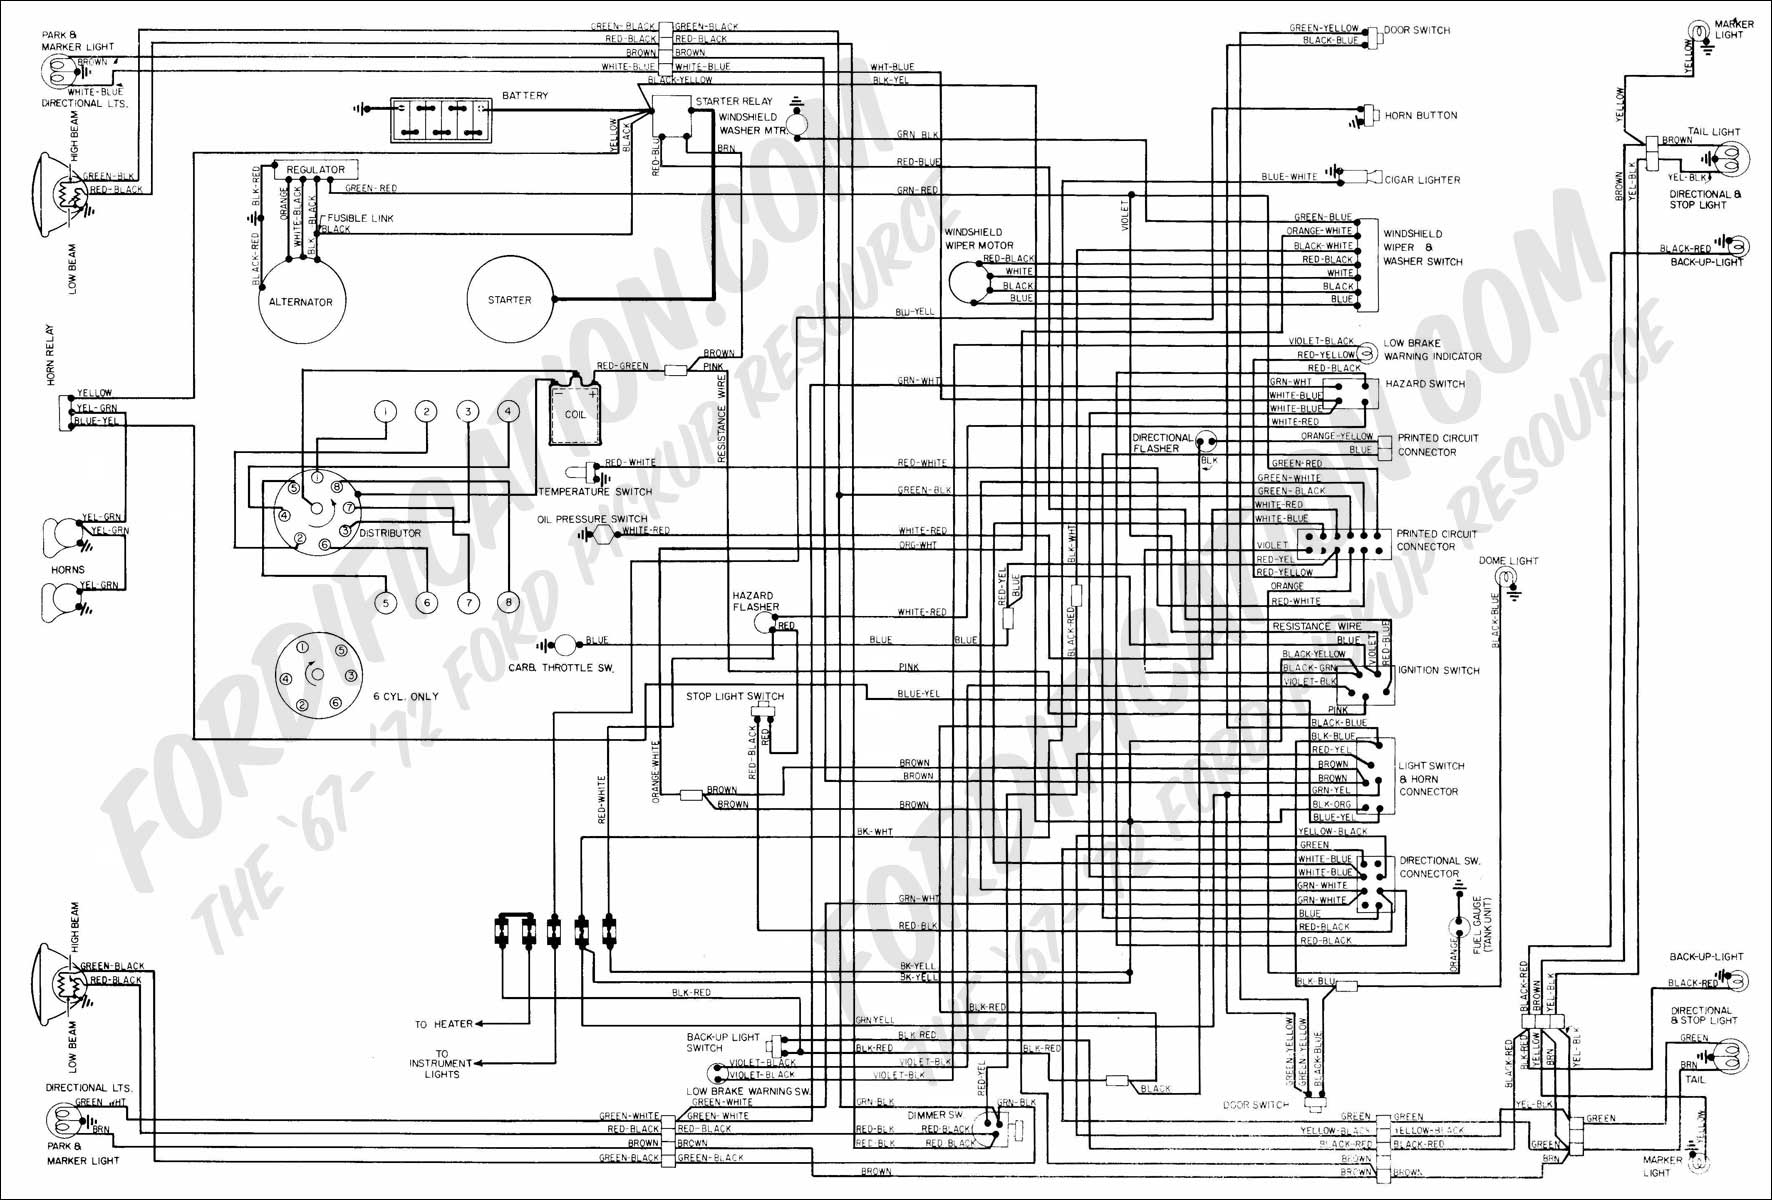 2002 ford ignition system wiring diagram pdf with 1216917 Light Switch Dome Light Control on 1216917 Light Switch Dome Light Control likewise 290200769714254406 moreover Vw Polo 1 4 Tdi Wiring Diagram as well 1970 Mercury Cougar Wiring Diagram Pdf in addition System Circuit Wiring Diagram Of 1997 Hyundai Accent.